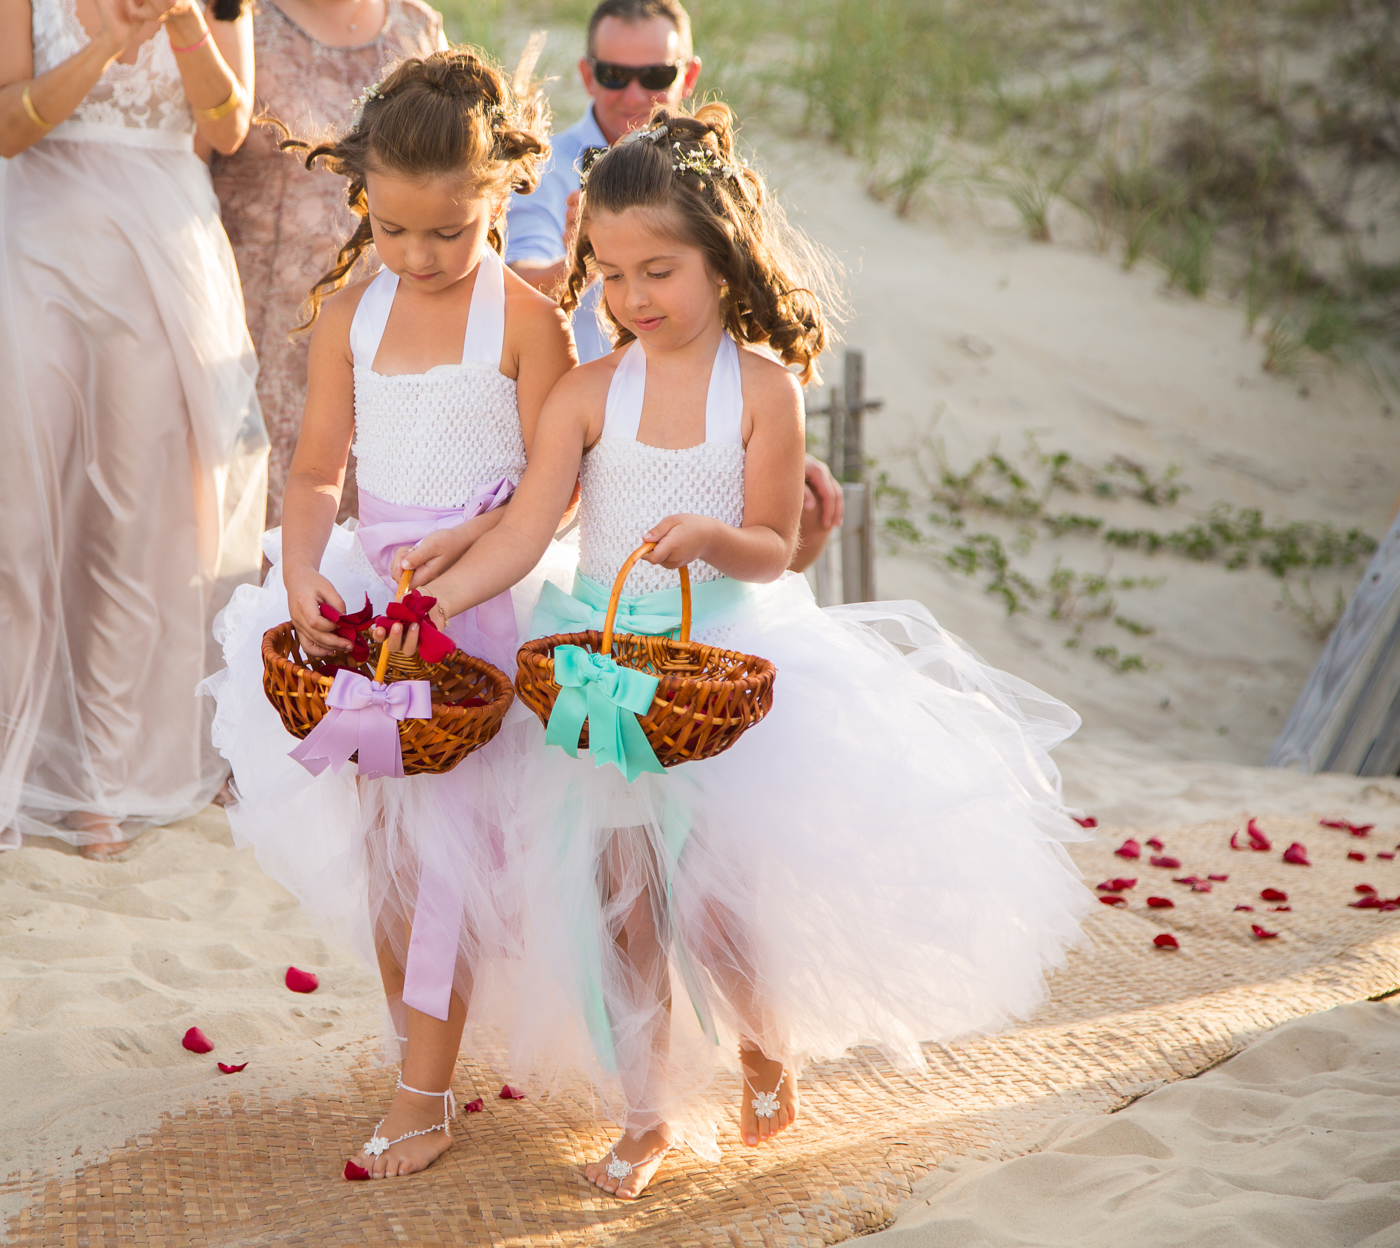 Beautiful Brazilian Beach Wedding North Carolina-Ksenia-Pro-Photography-26